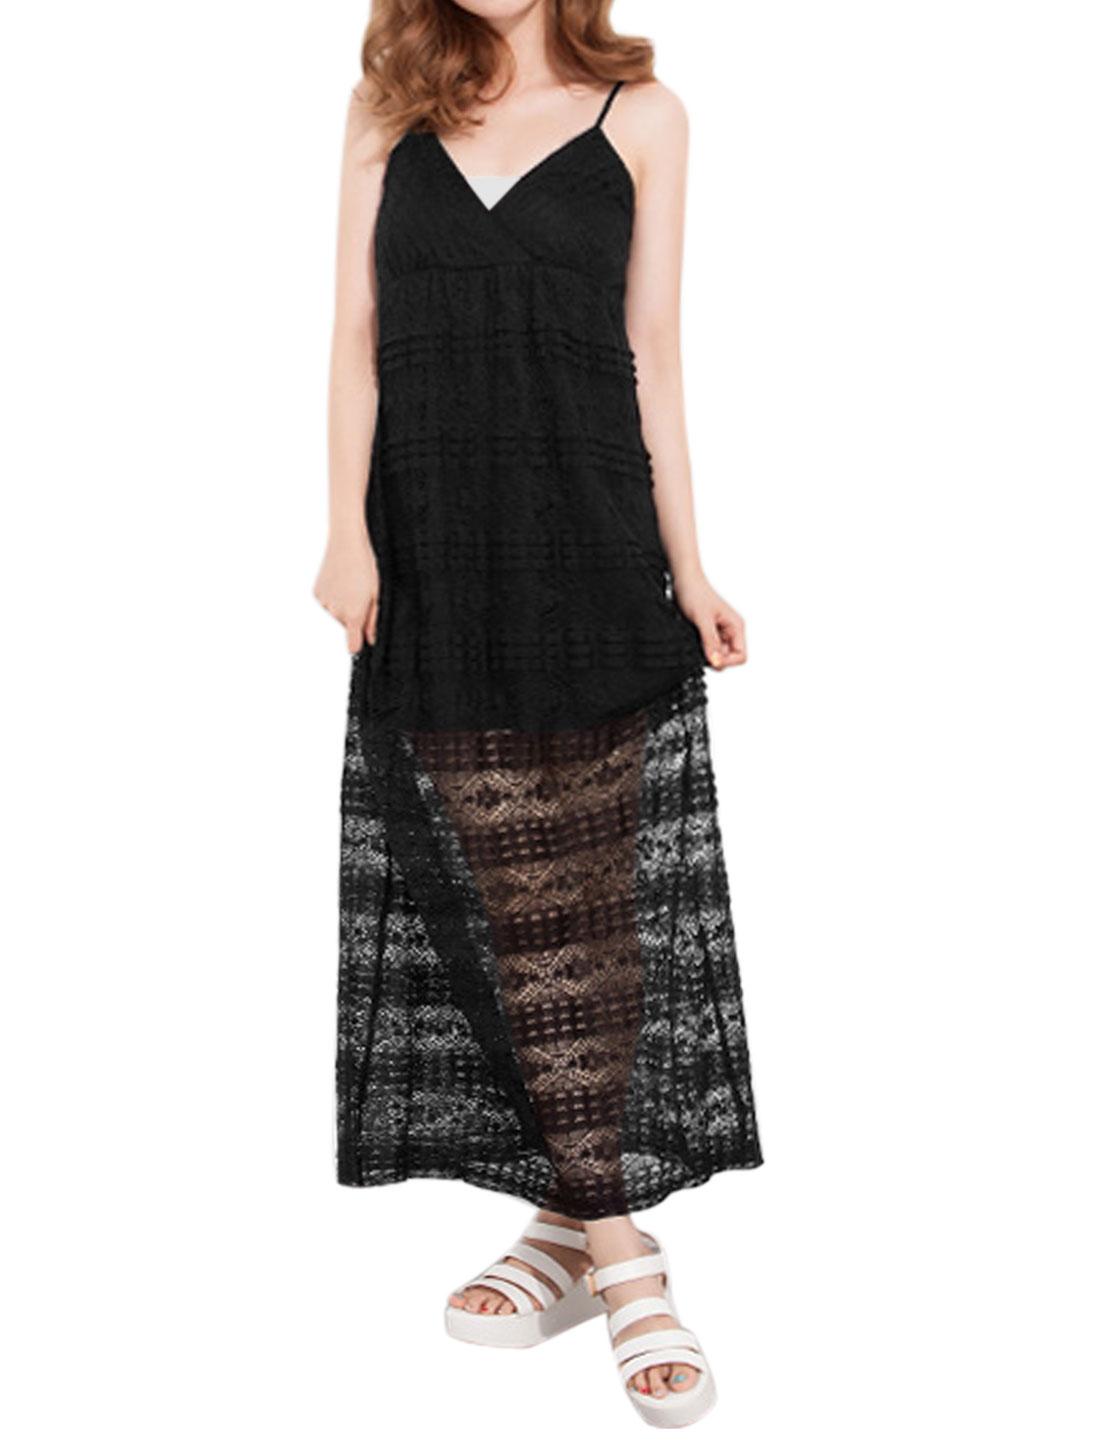 Women Spaghetti Strap Empire Waist Crossover V Neck Lace Maxi Dress Black XS